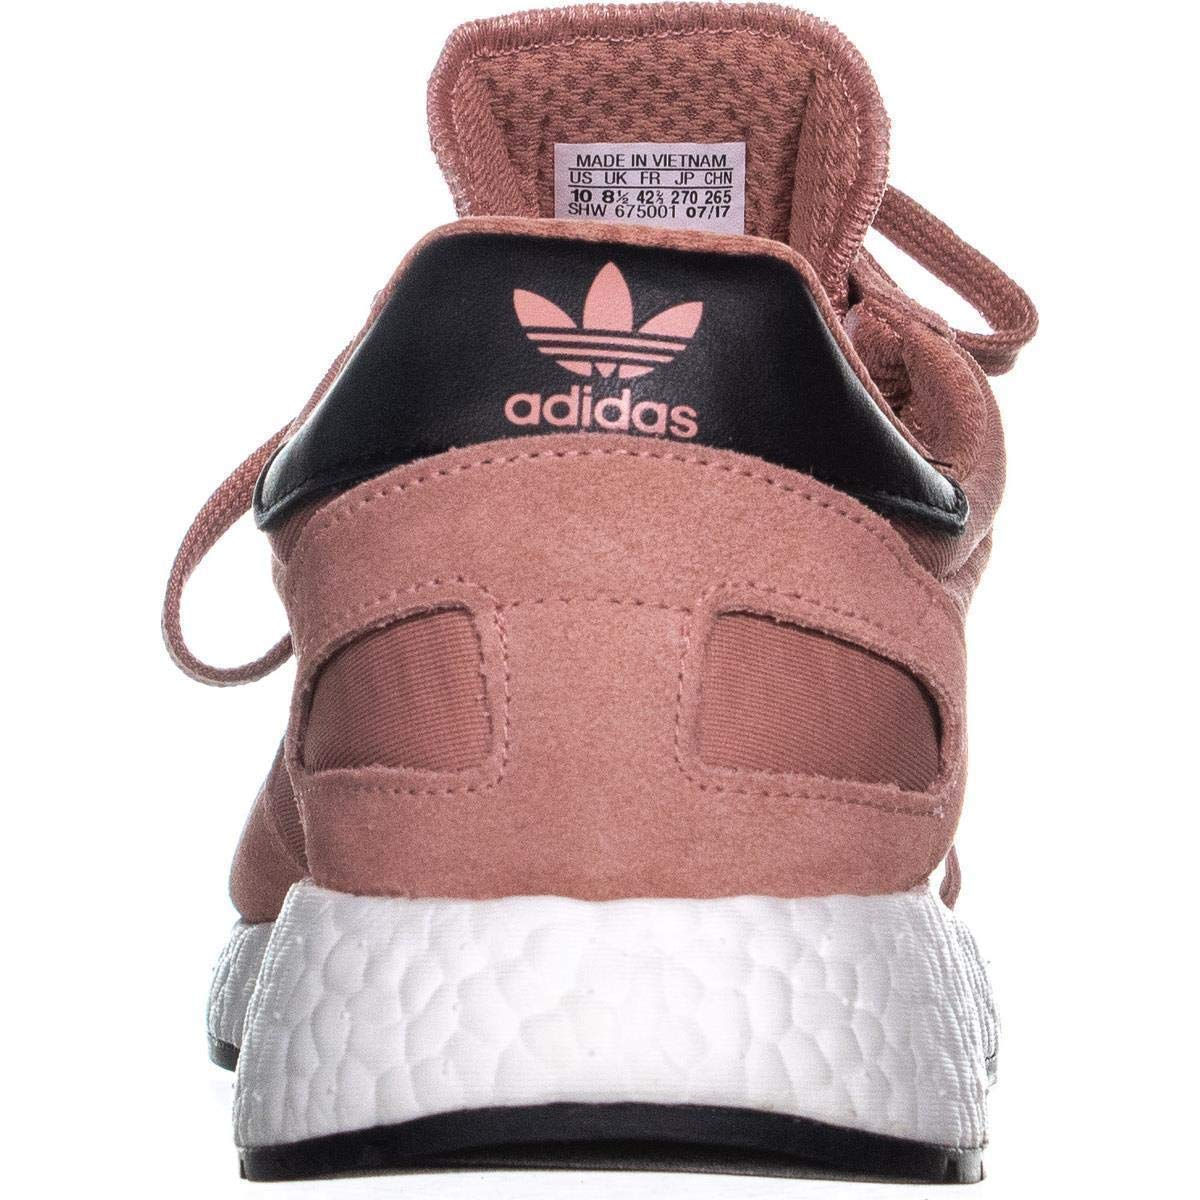 adidas iniki donna red